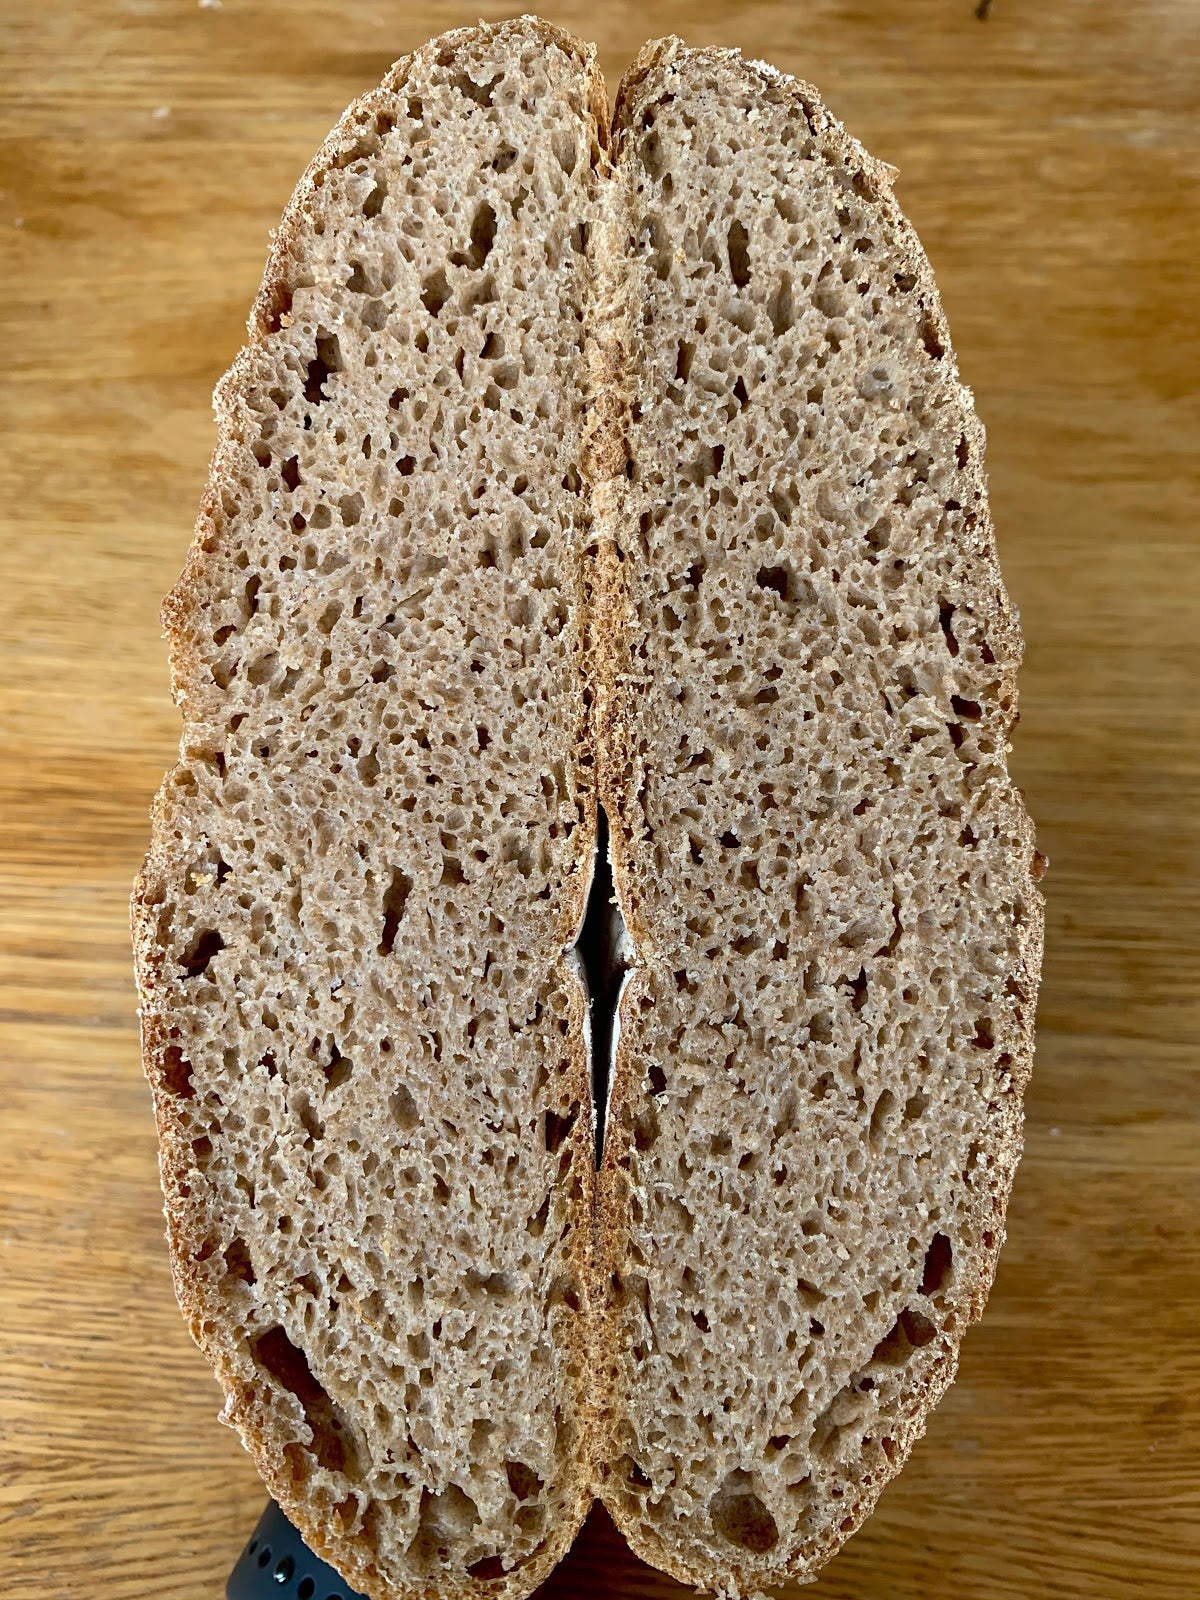 German Rye Sourdough Starter